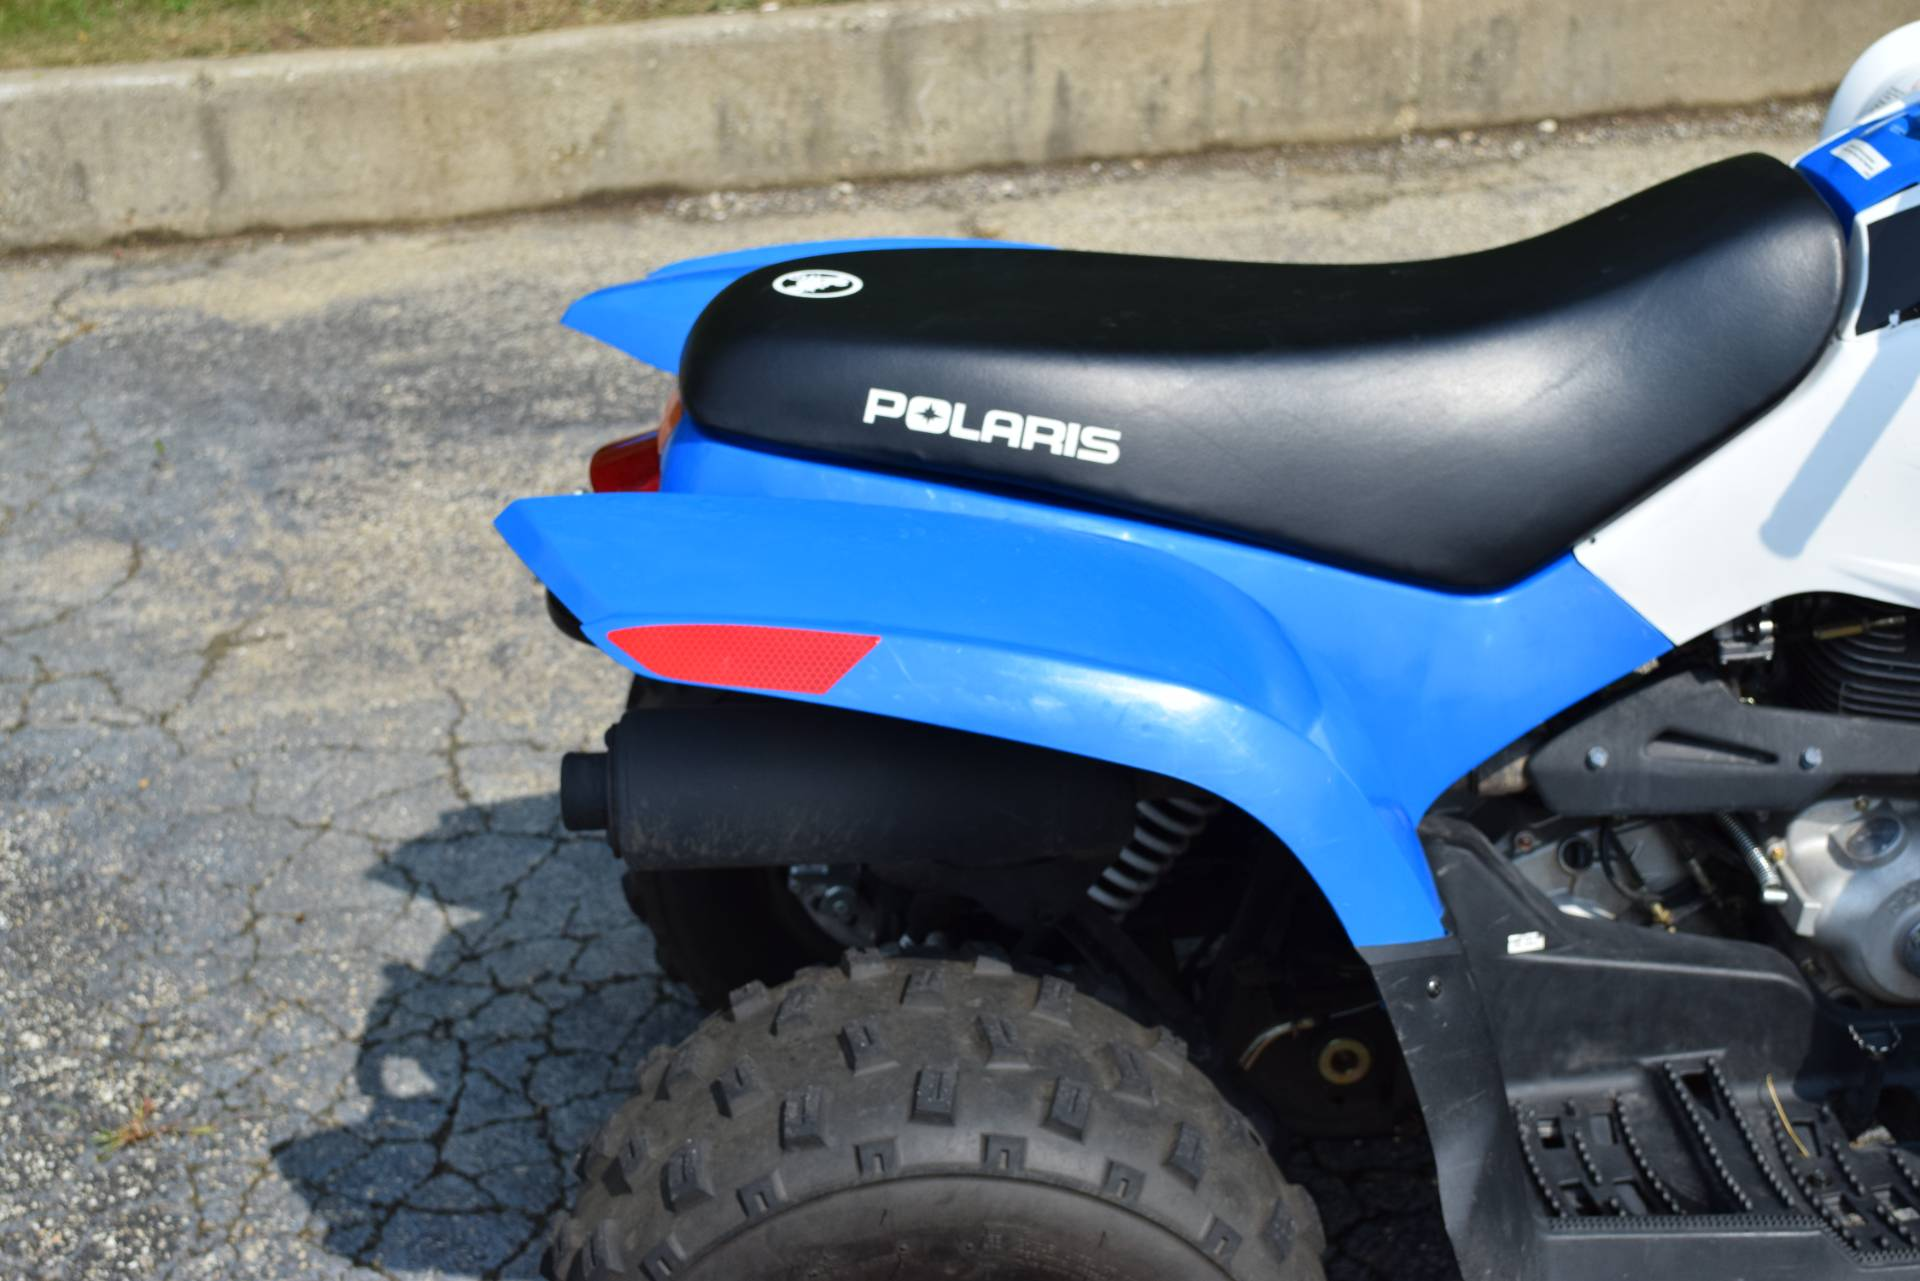 2016 Polaris Phoenix 200 in Wauconda, Illinois - Photo 7